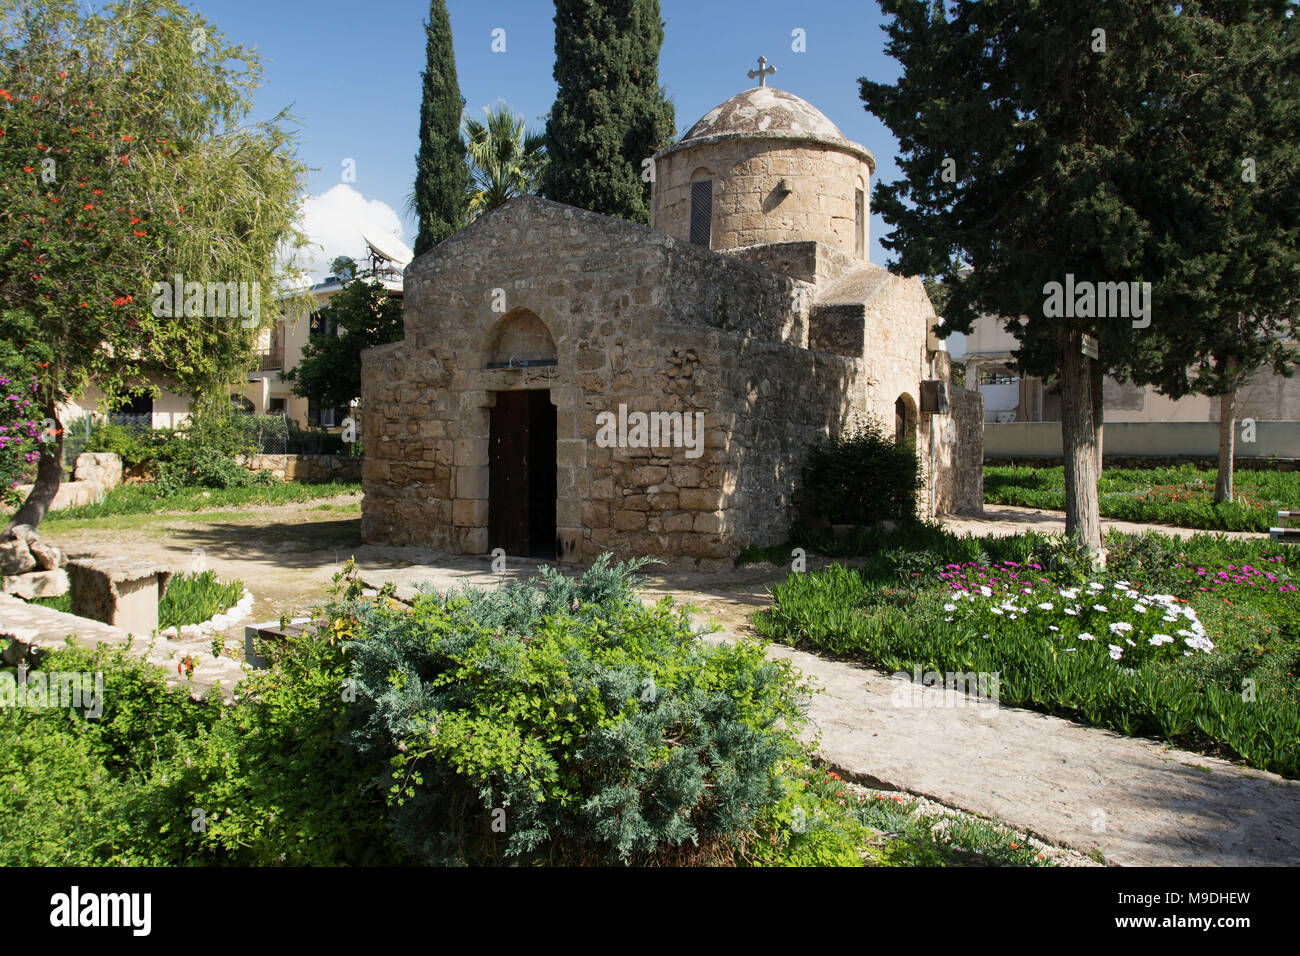 Small stone church in Kato Paphos in small garden, Paphos, Cyprus, Mediterranean - Stock Image